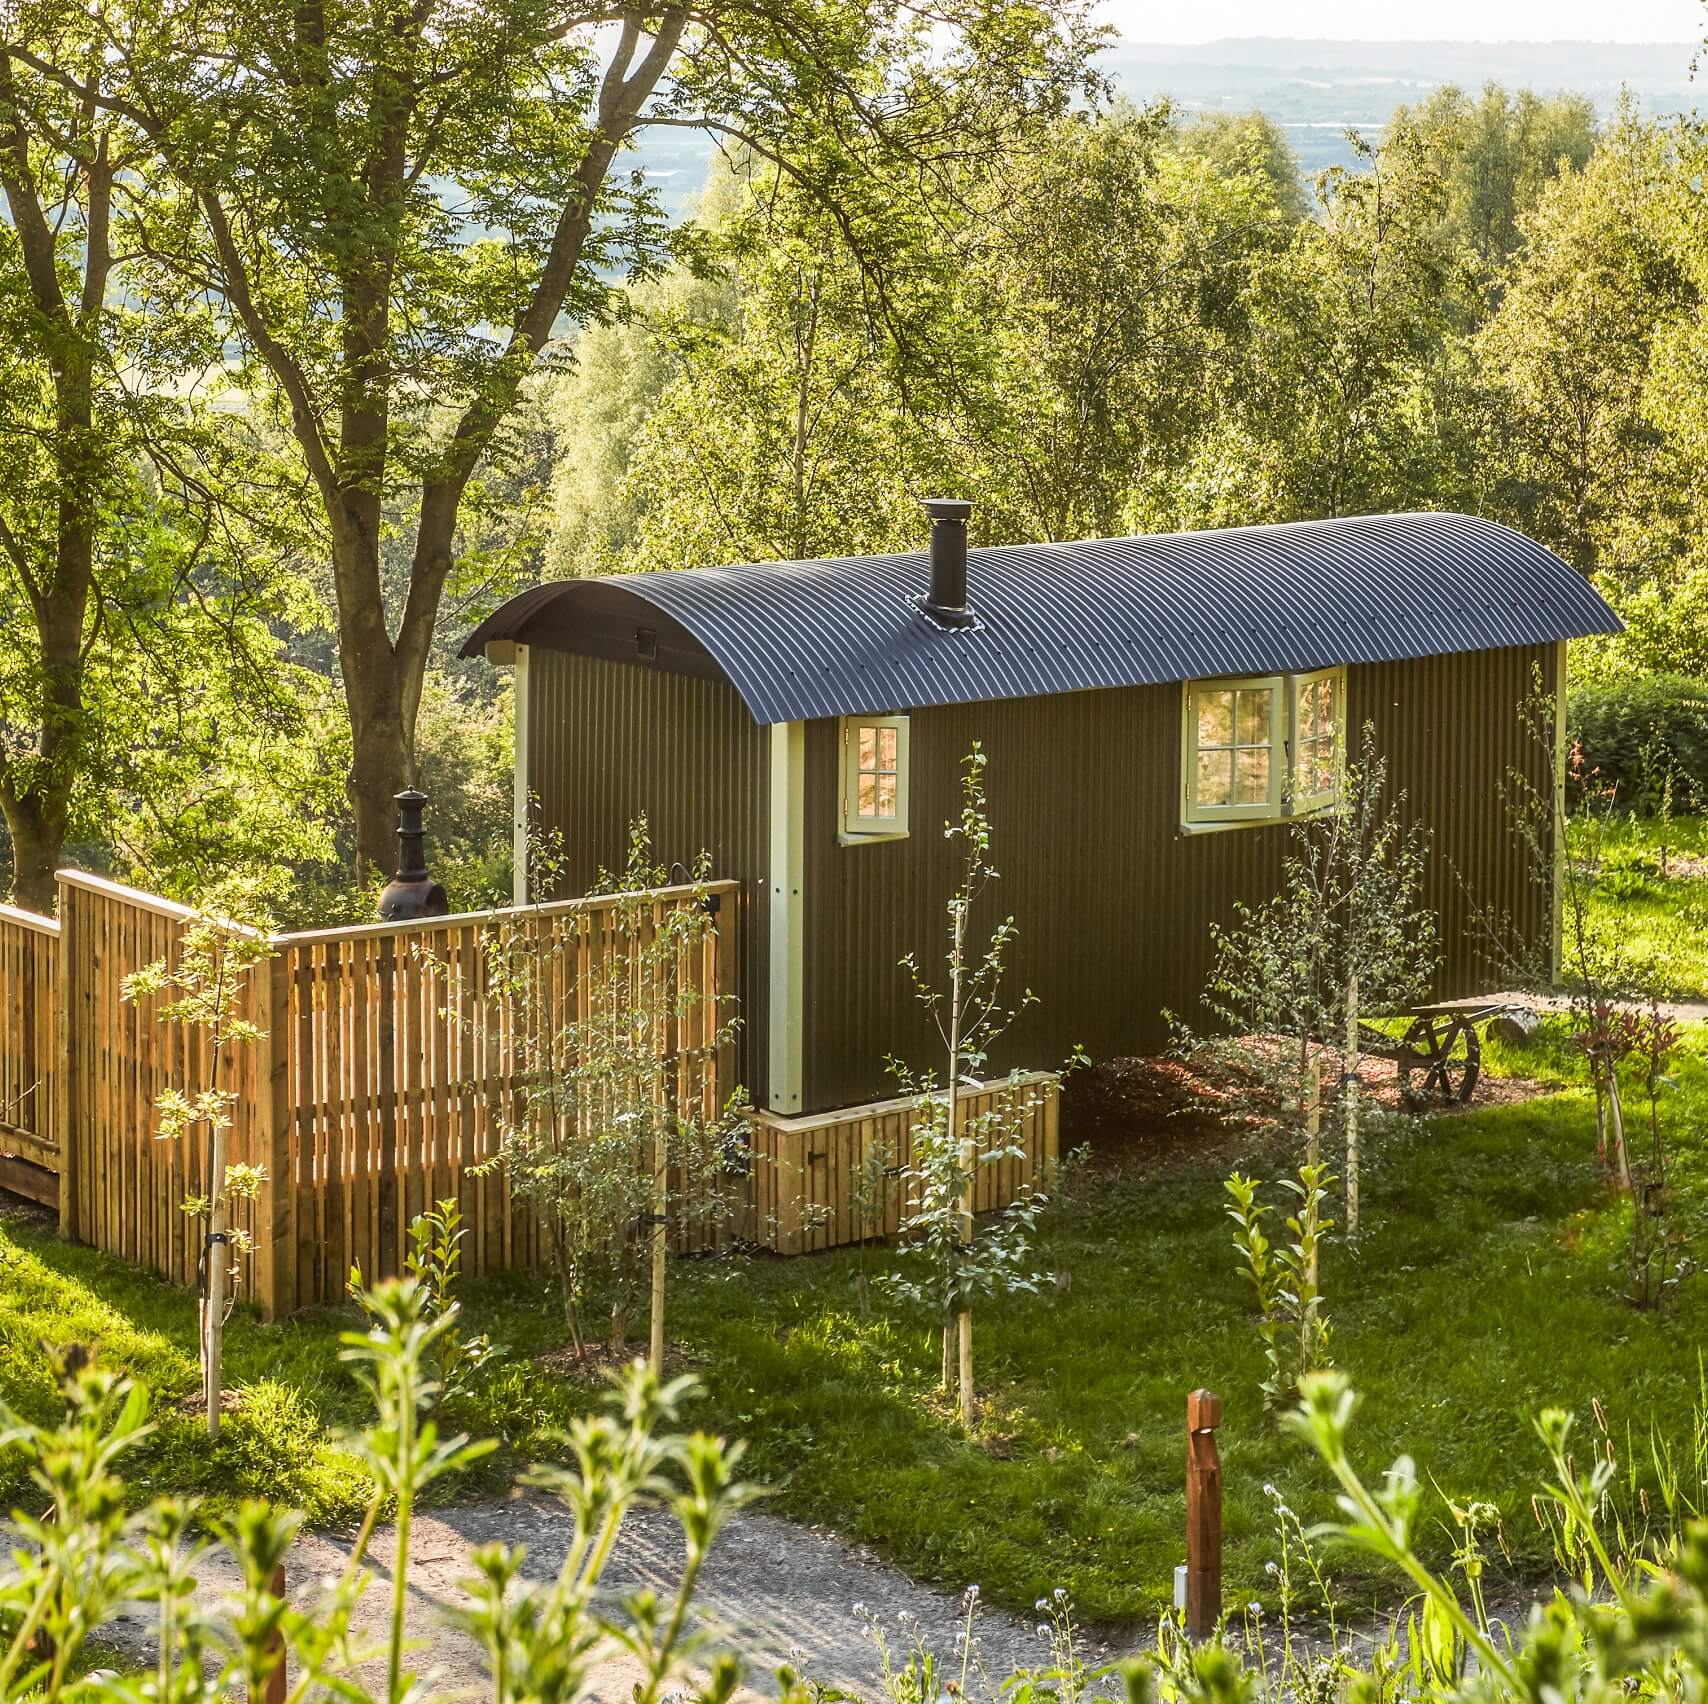 Win a two-night stay at The Fish Hotel in the Cotswold